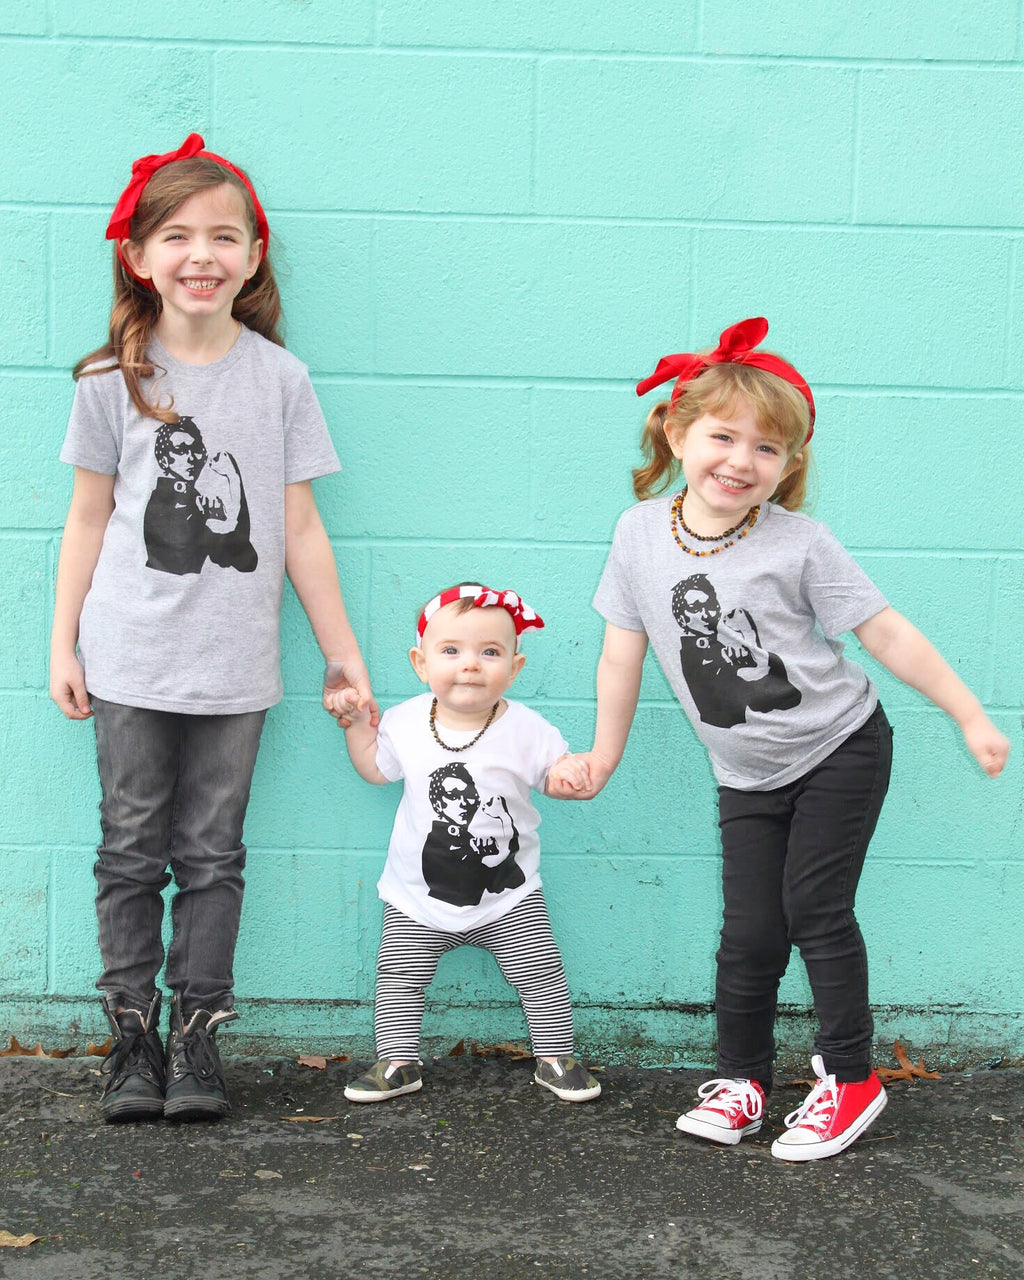 Rosie the Riveter Toddler Tee - That Oregon Girl